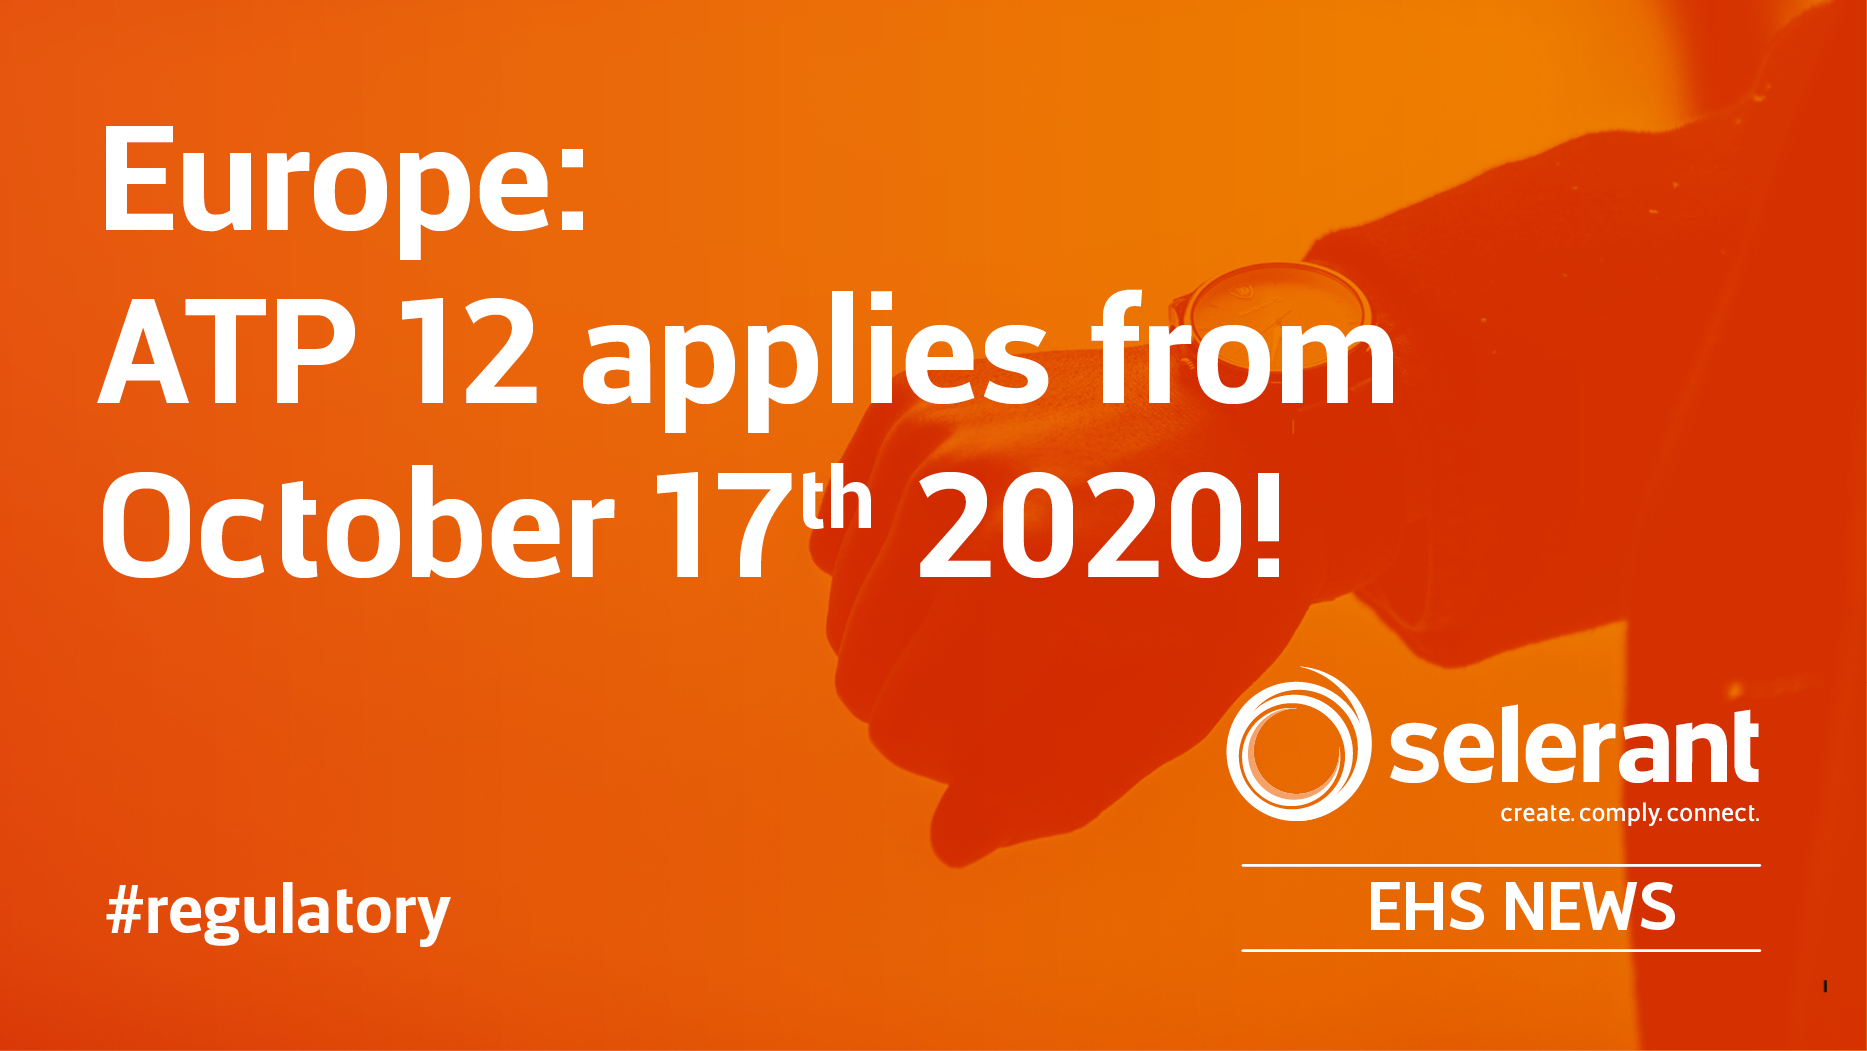 Europe: ATP 12 applies from October 17th 2020!